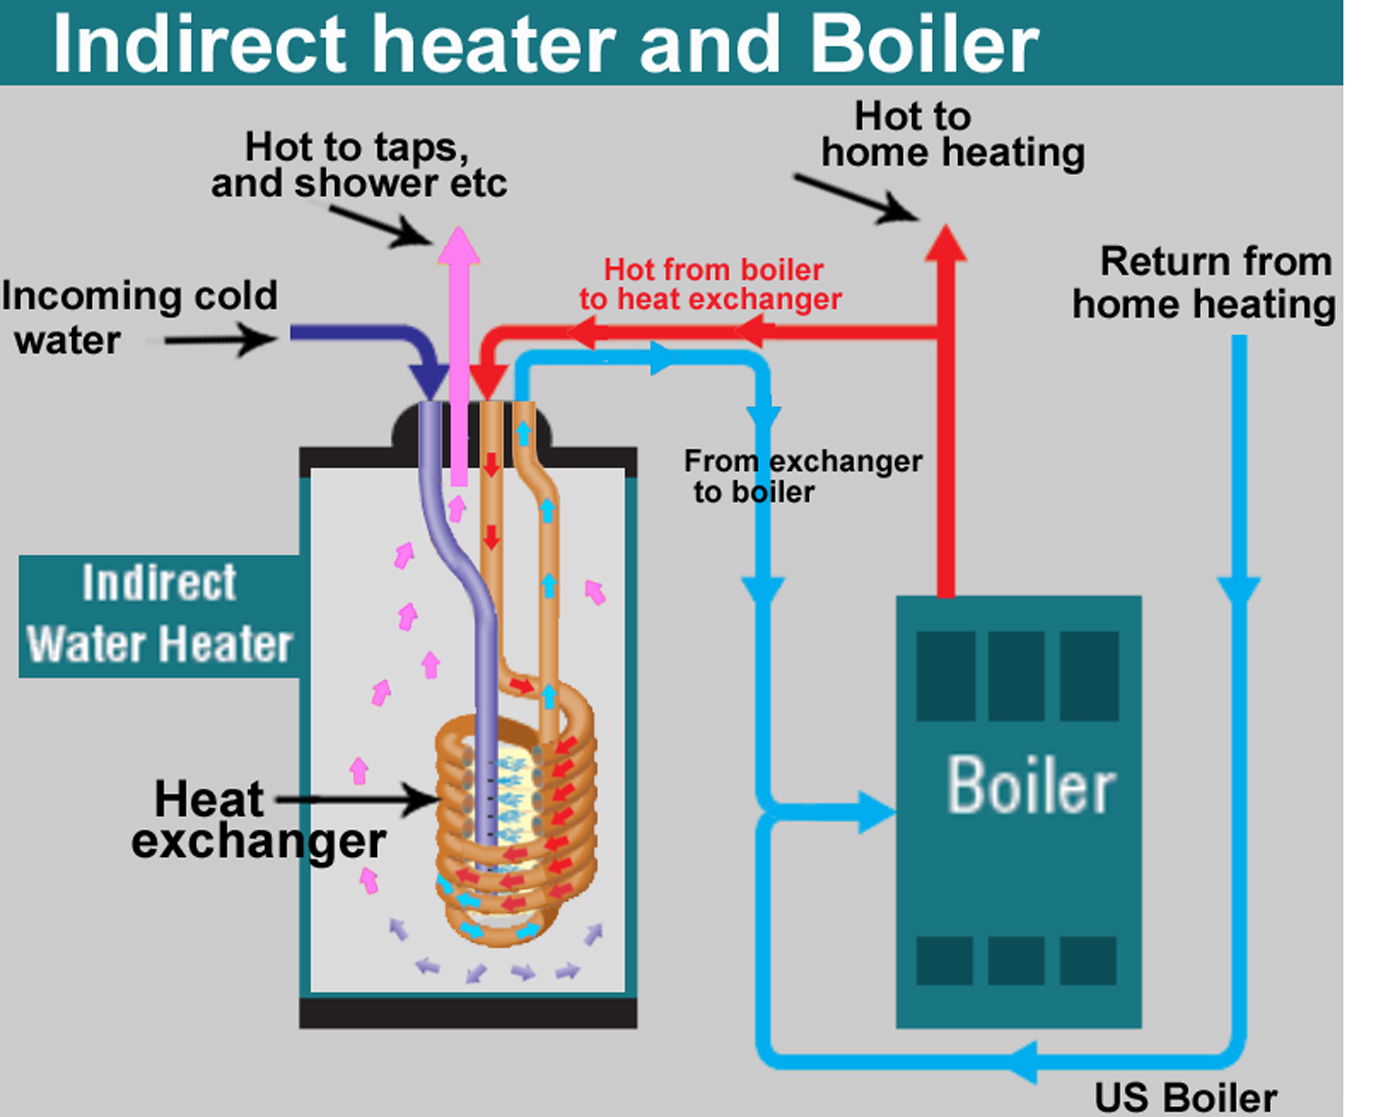 hight resolution of larger image with more detailed plumbing indirect heater and boiler fig 1 shows overview of boiler and indirect heater operation